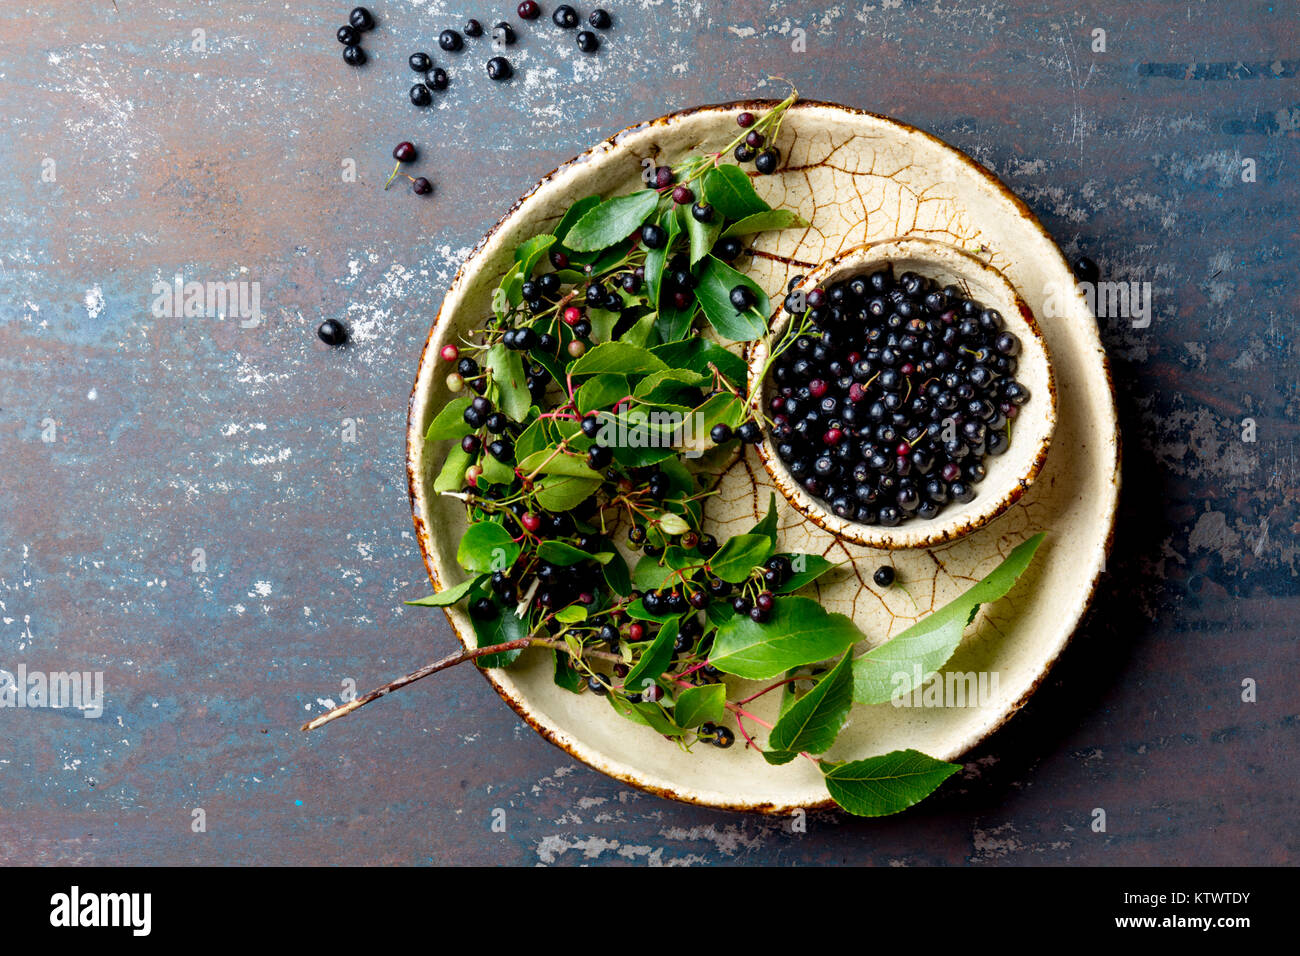 Superfood MAQUI BERRY. Superfoods antioxidant of indian mapuche, Chile. Bowl of fresh maqui berry and maqui berry - Stock Image